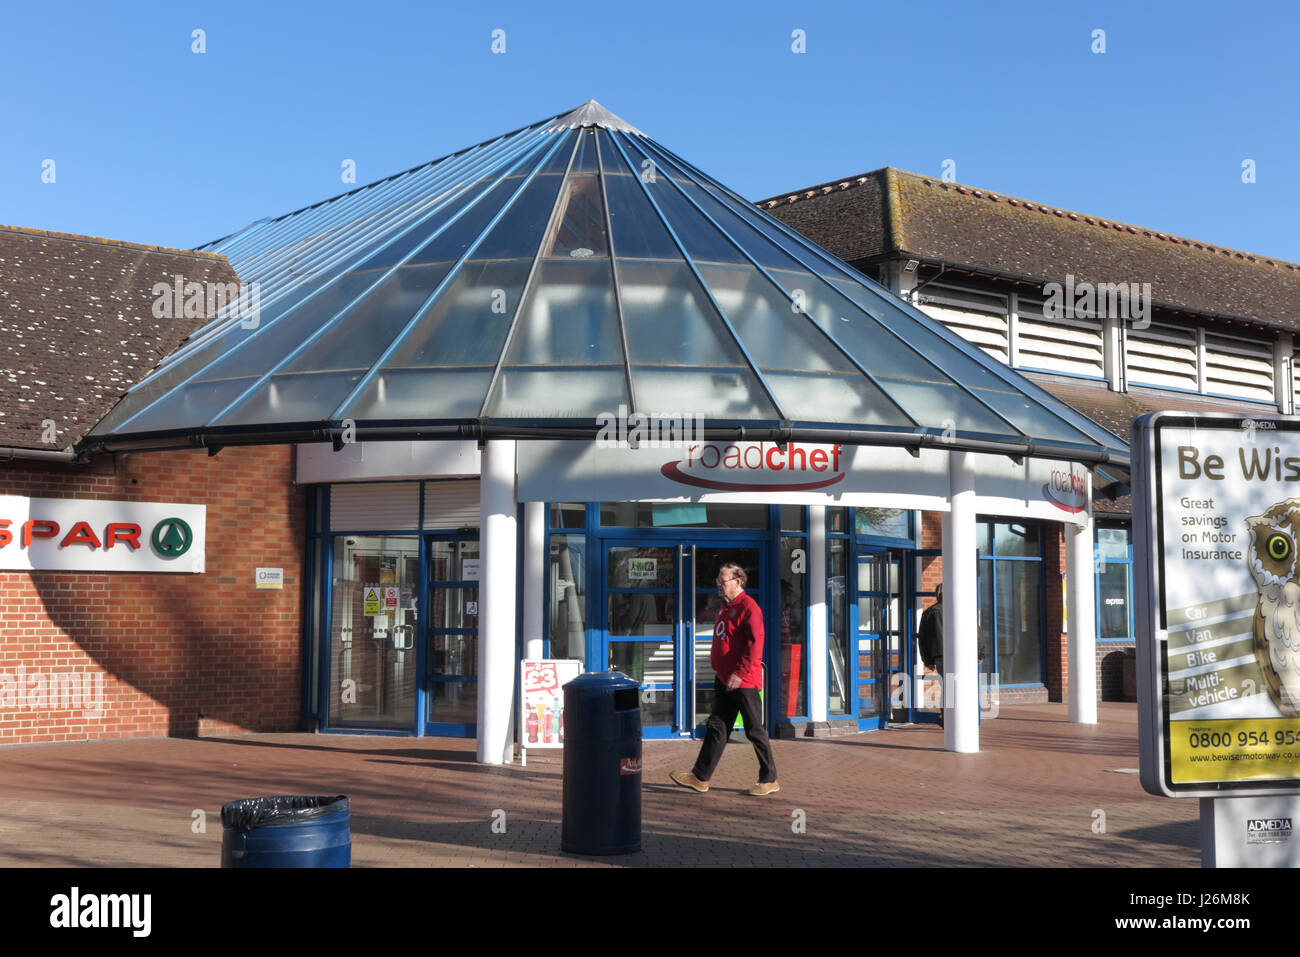 Roadchef Strensham Motorway Services, M5 Southbound, Worcestershire. - Stock Image